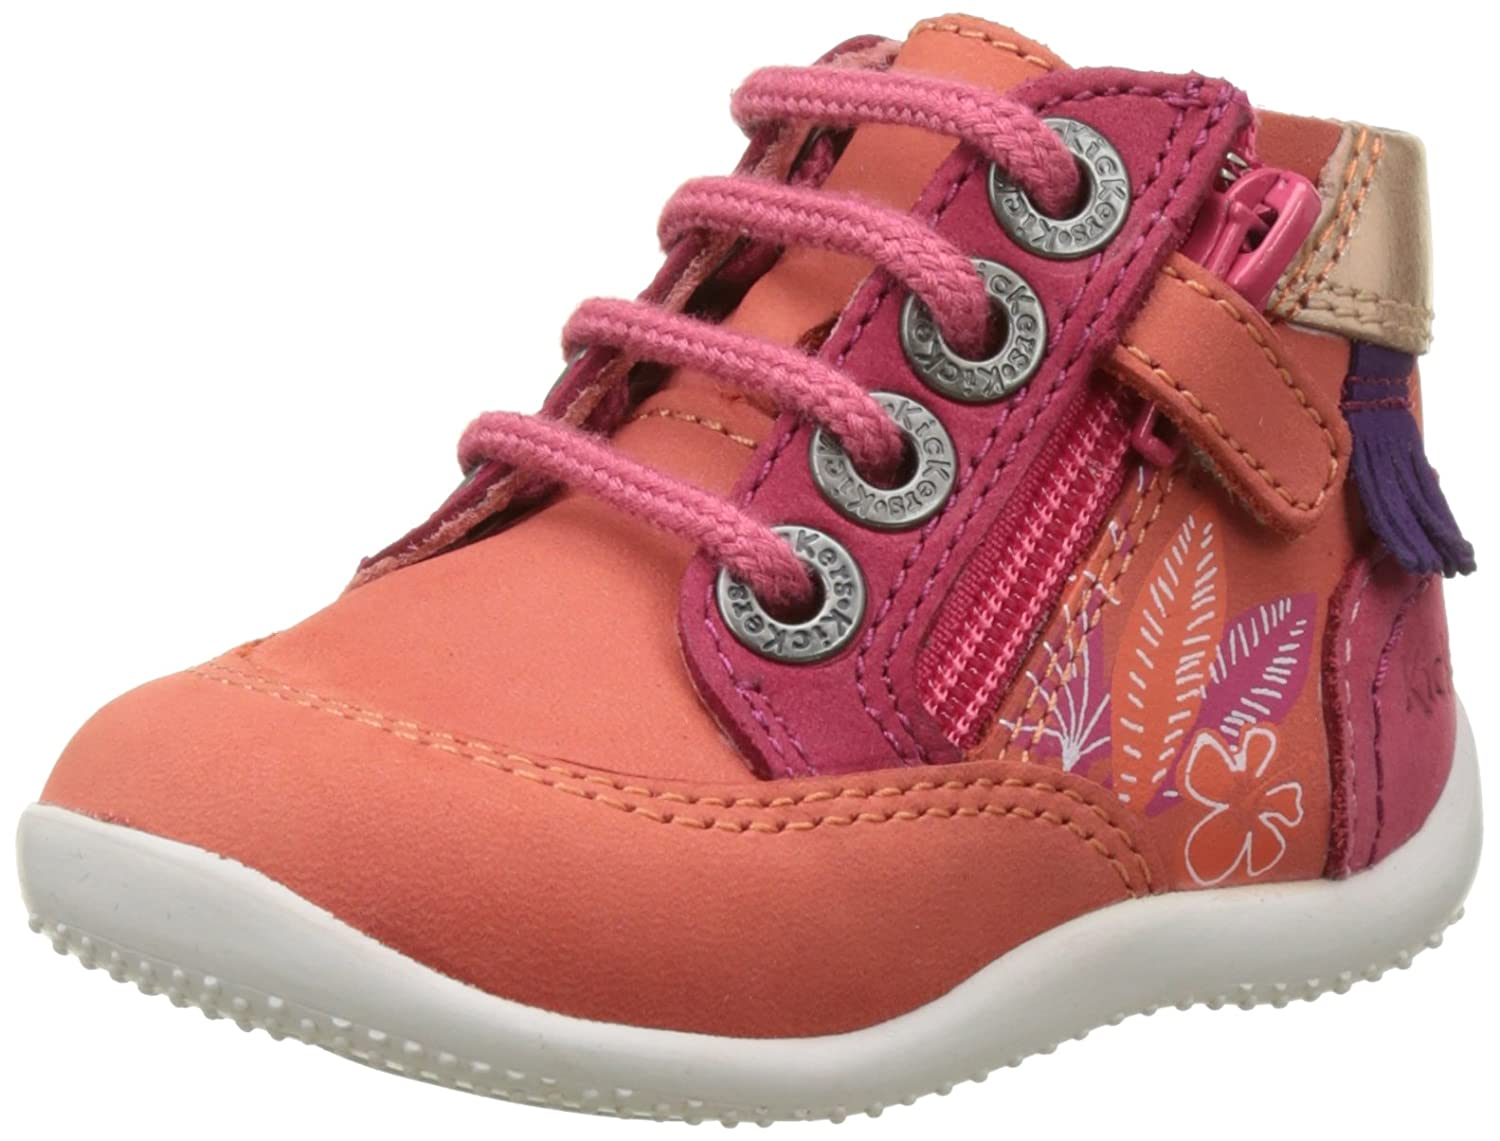 Kickers Biflorid, Baskets bébé Fille 552070-10-213